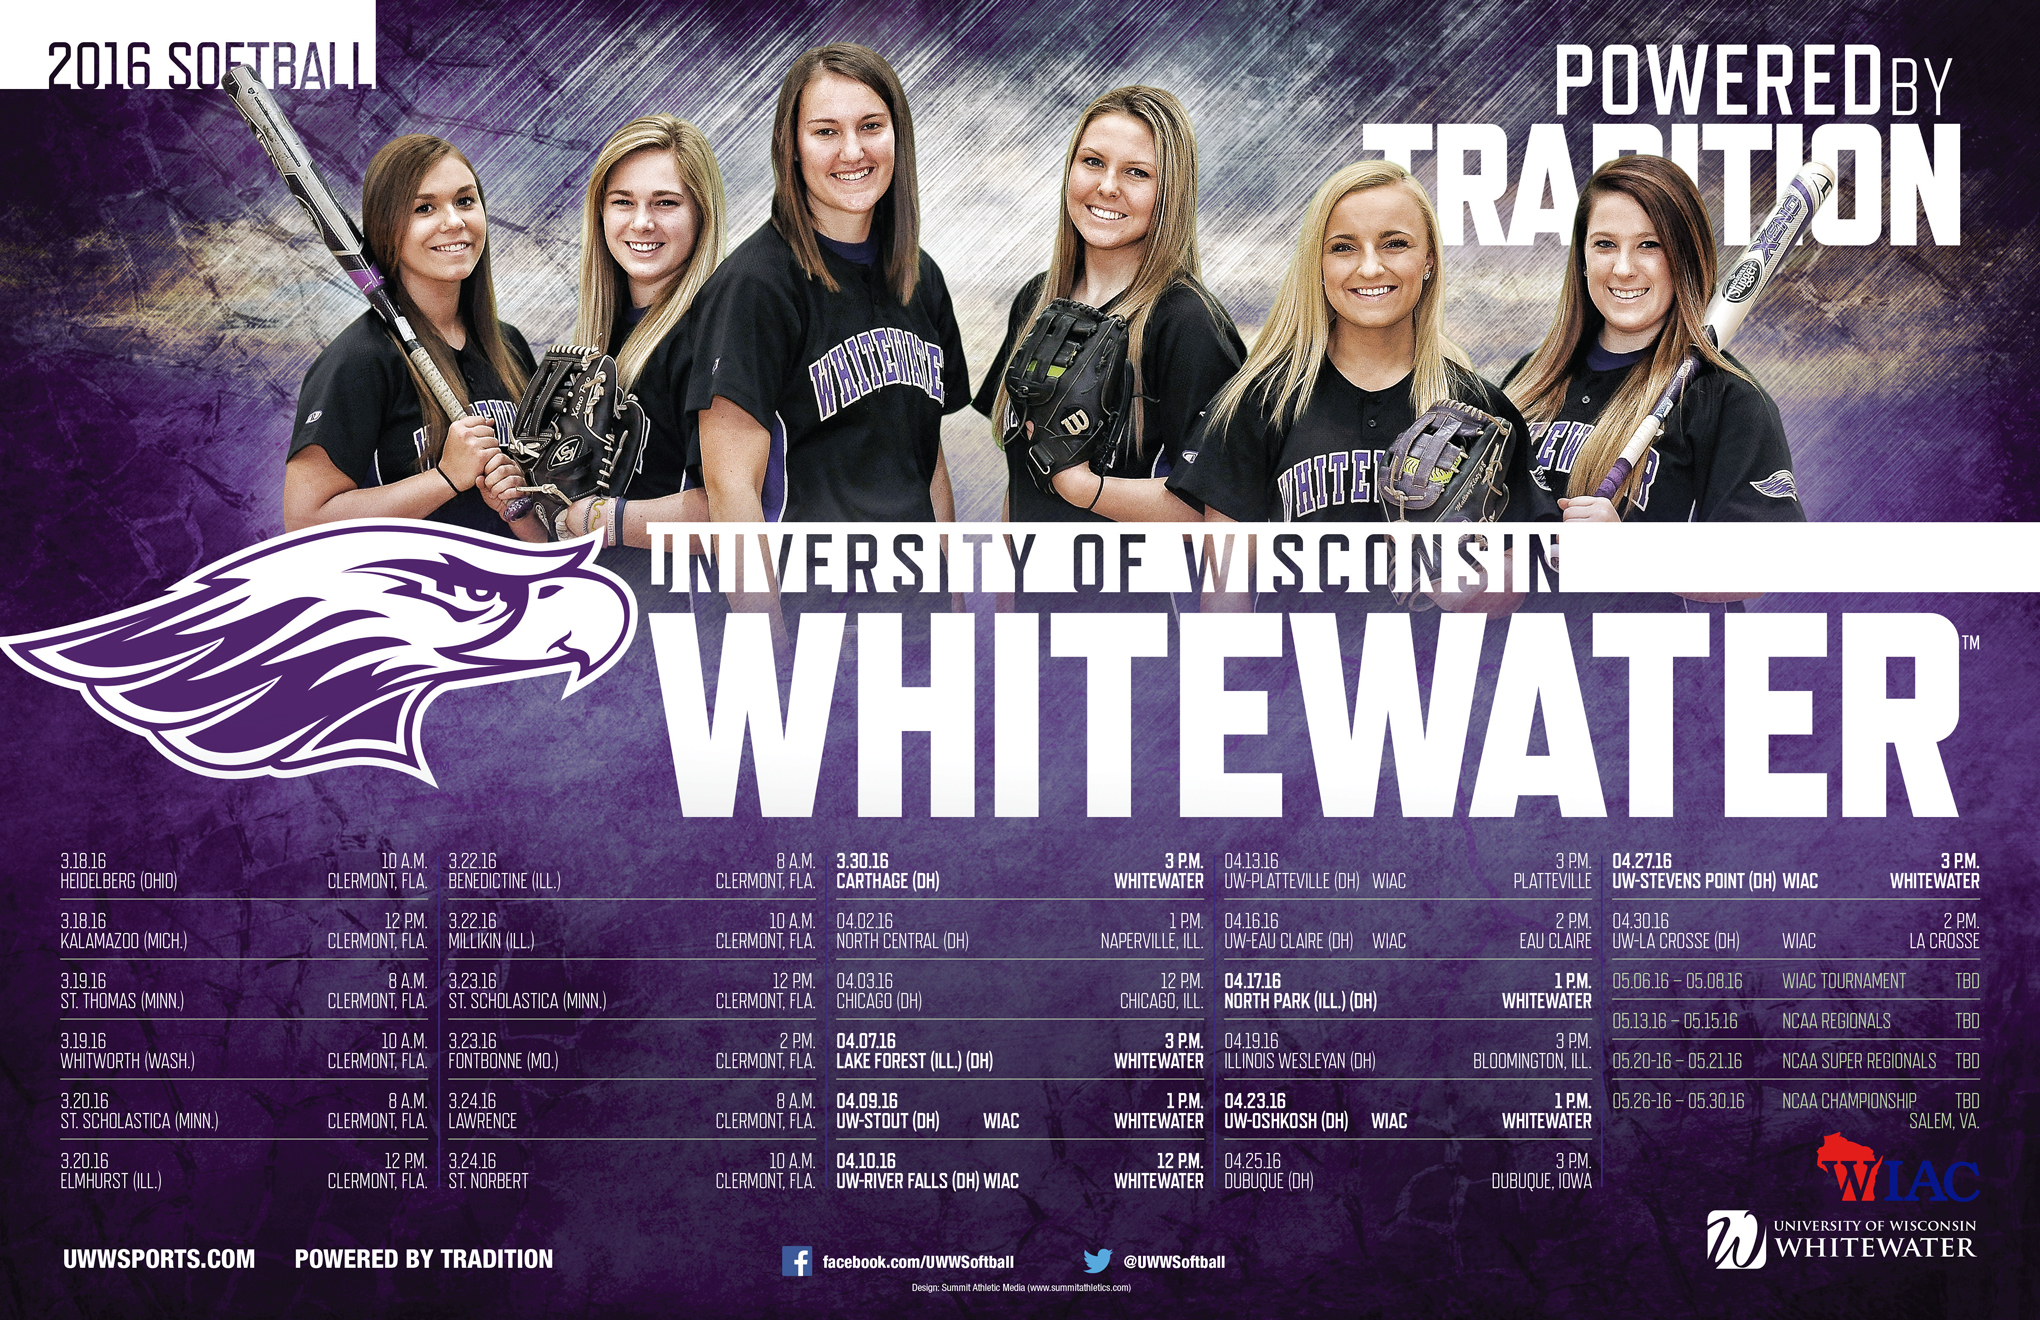 1458136476 2016 uw whitewater softball poster final